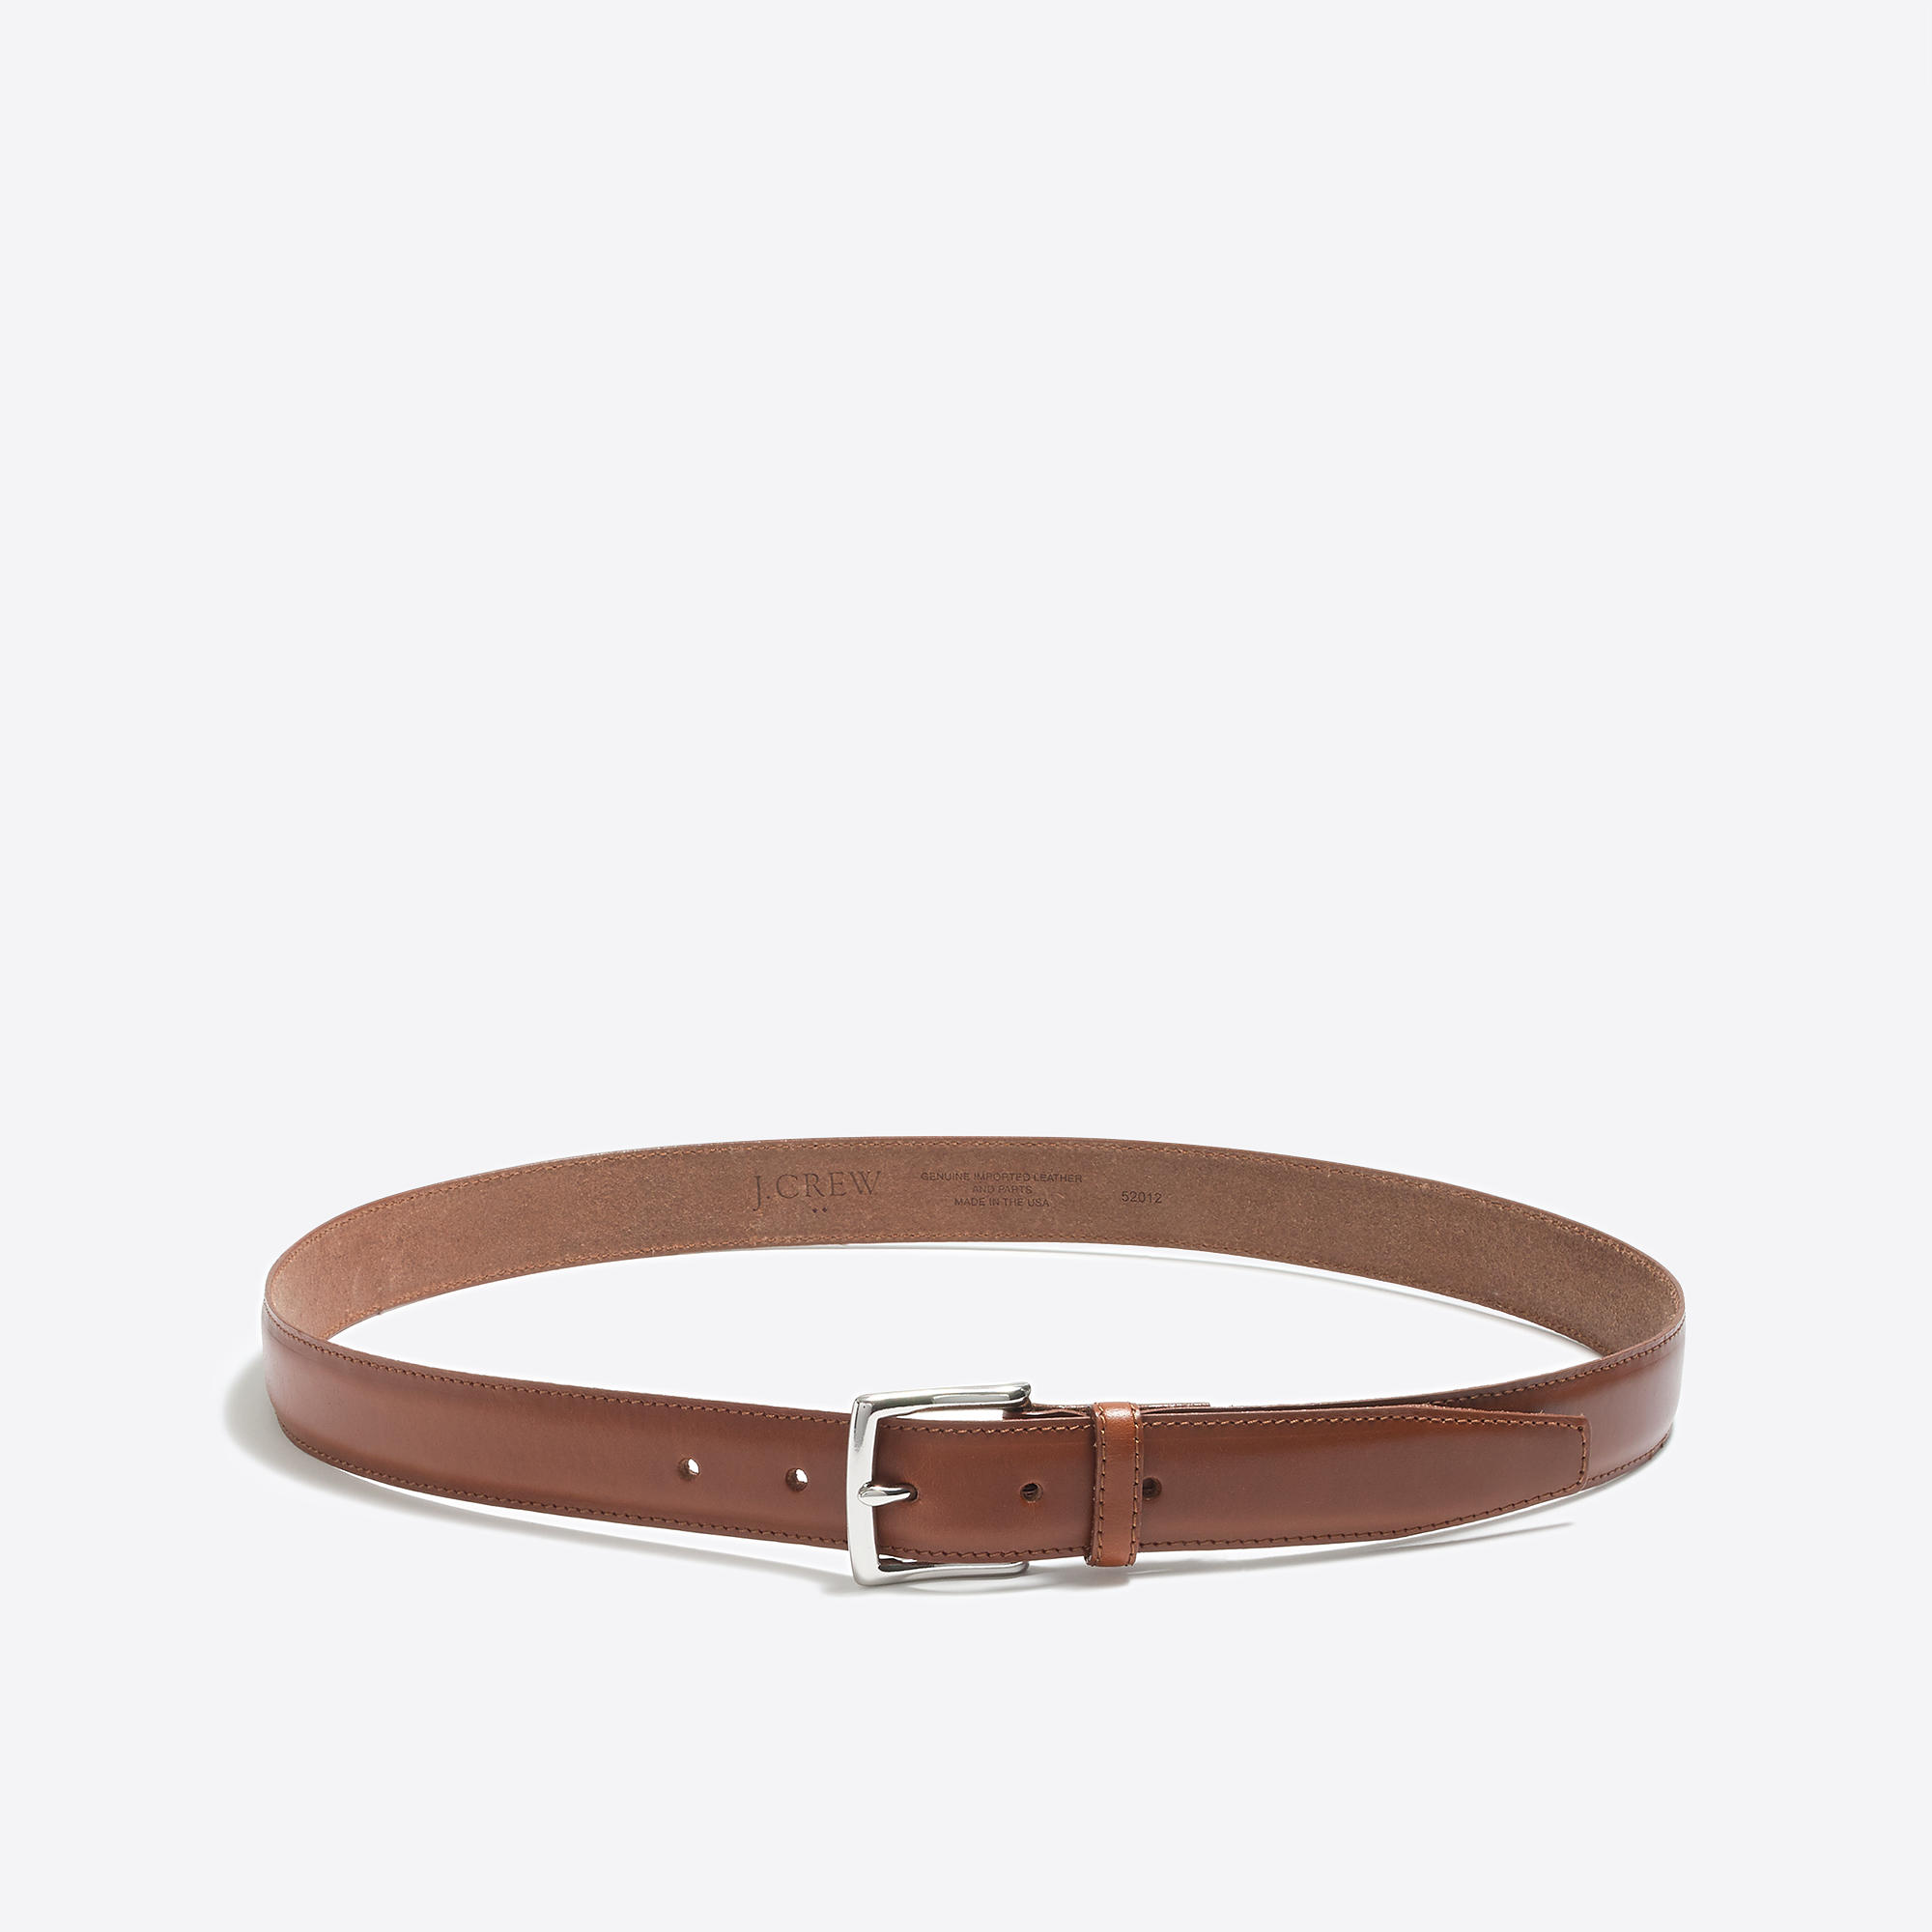 s classic leather dress belt j crew factory